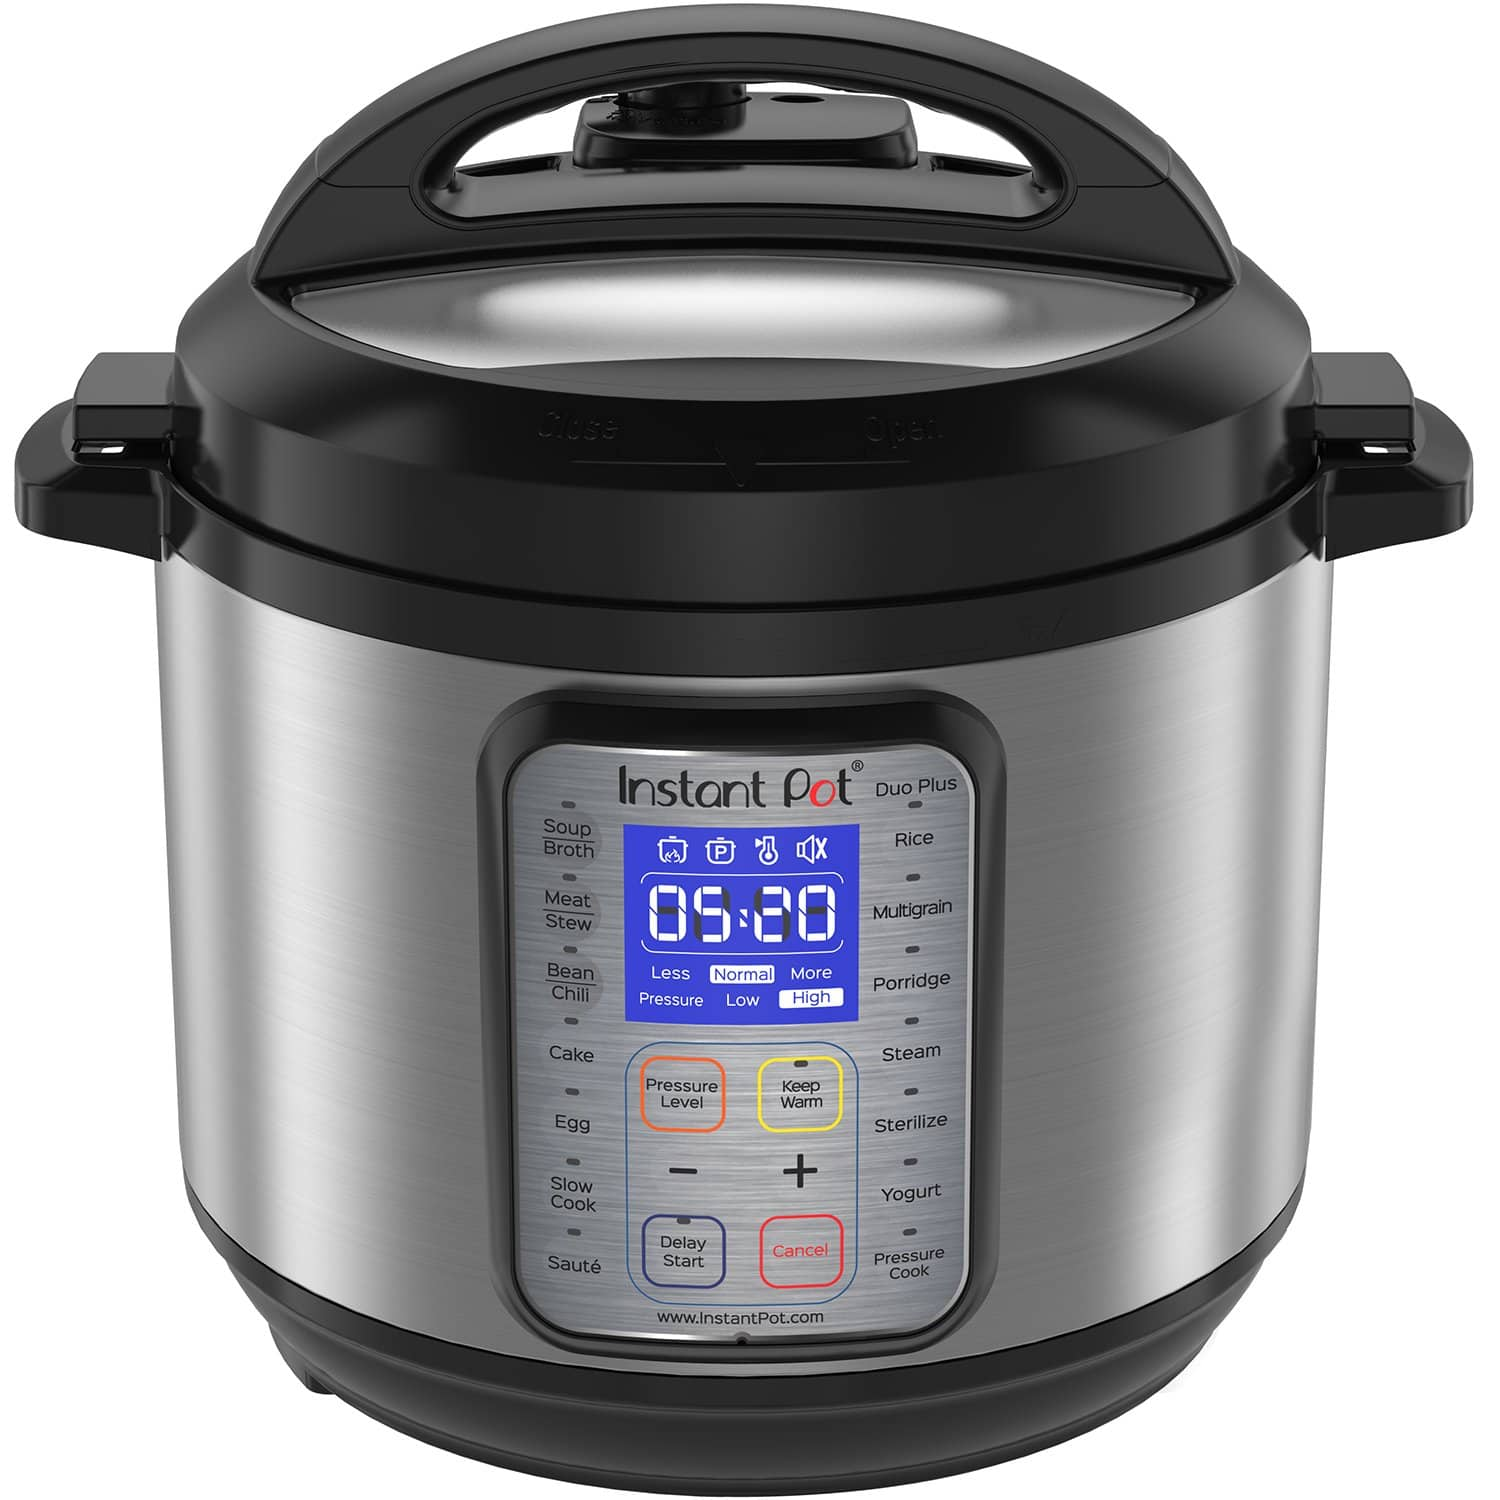 Instant Pot 60 DUO Plus 6 Qt 9-in-1 Multi-Use Programmable Pressure is on sale for $64.99 from Amazon